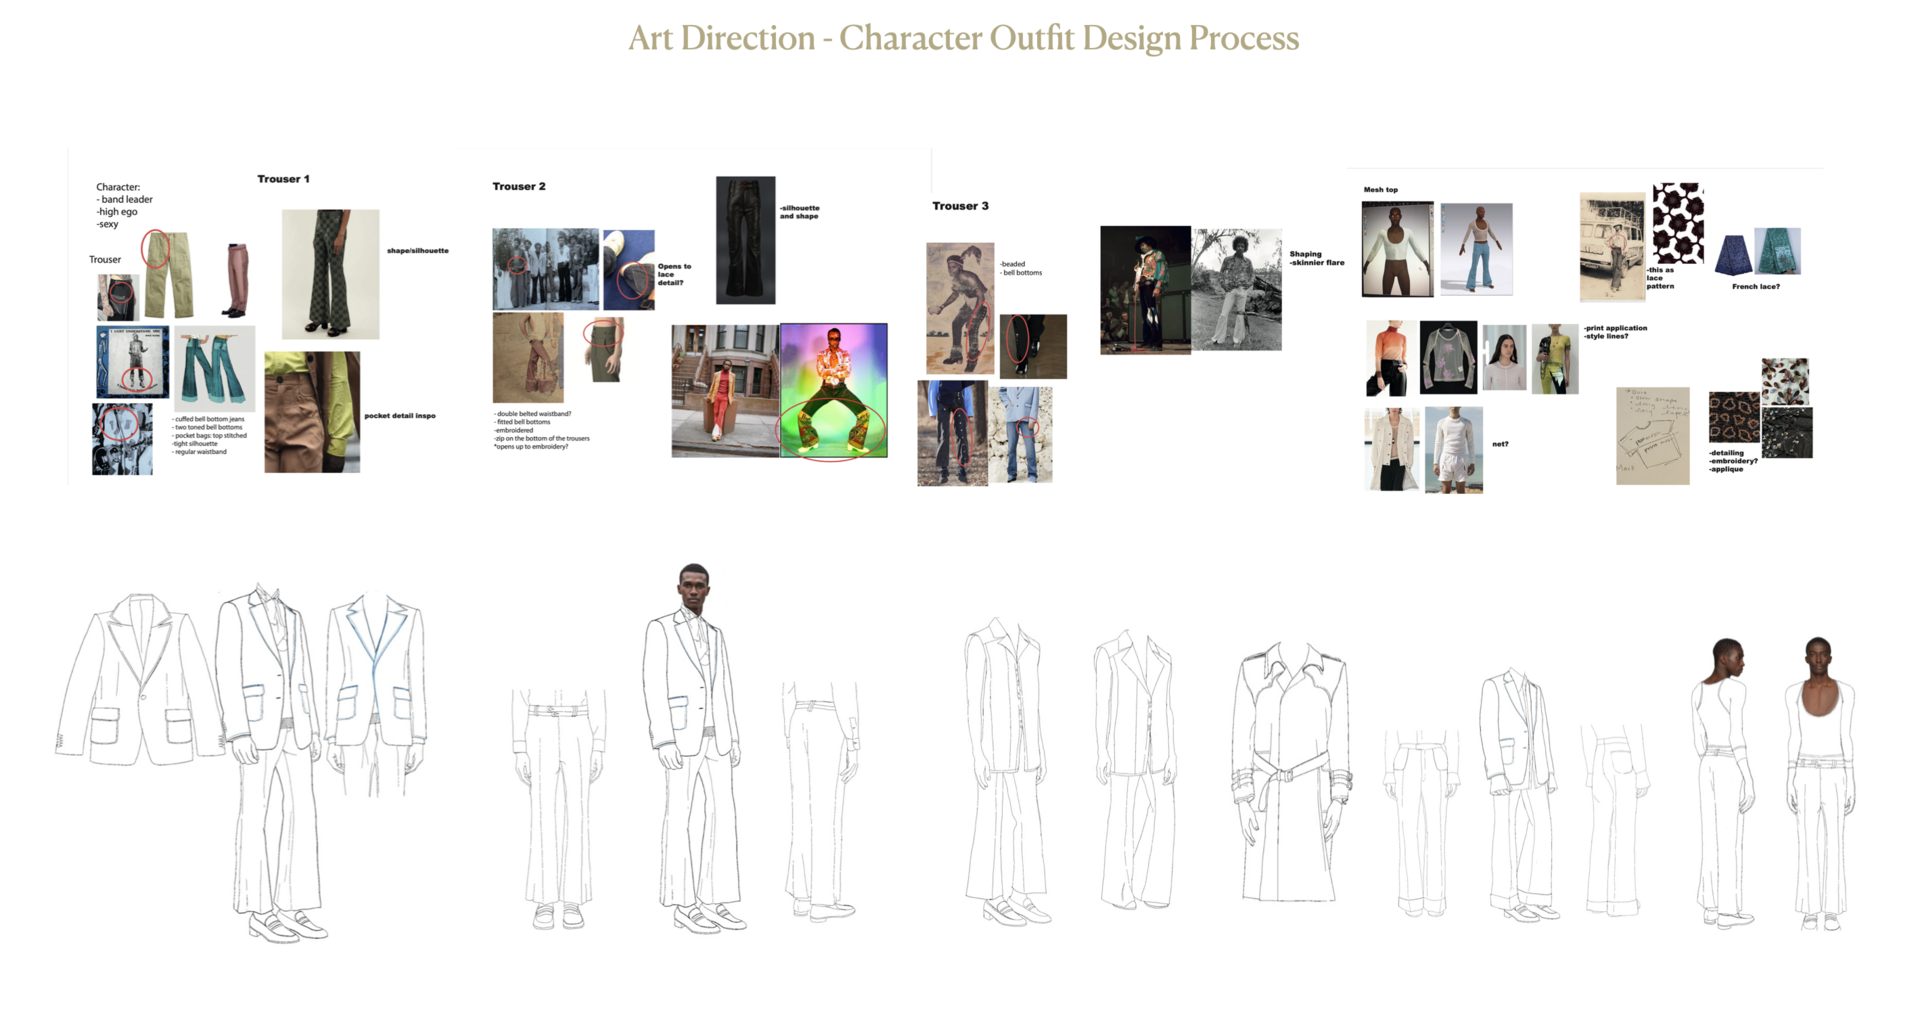 Art Direction for the character styling